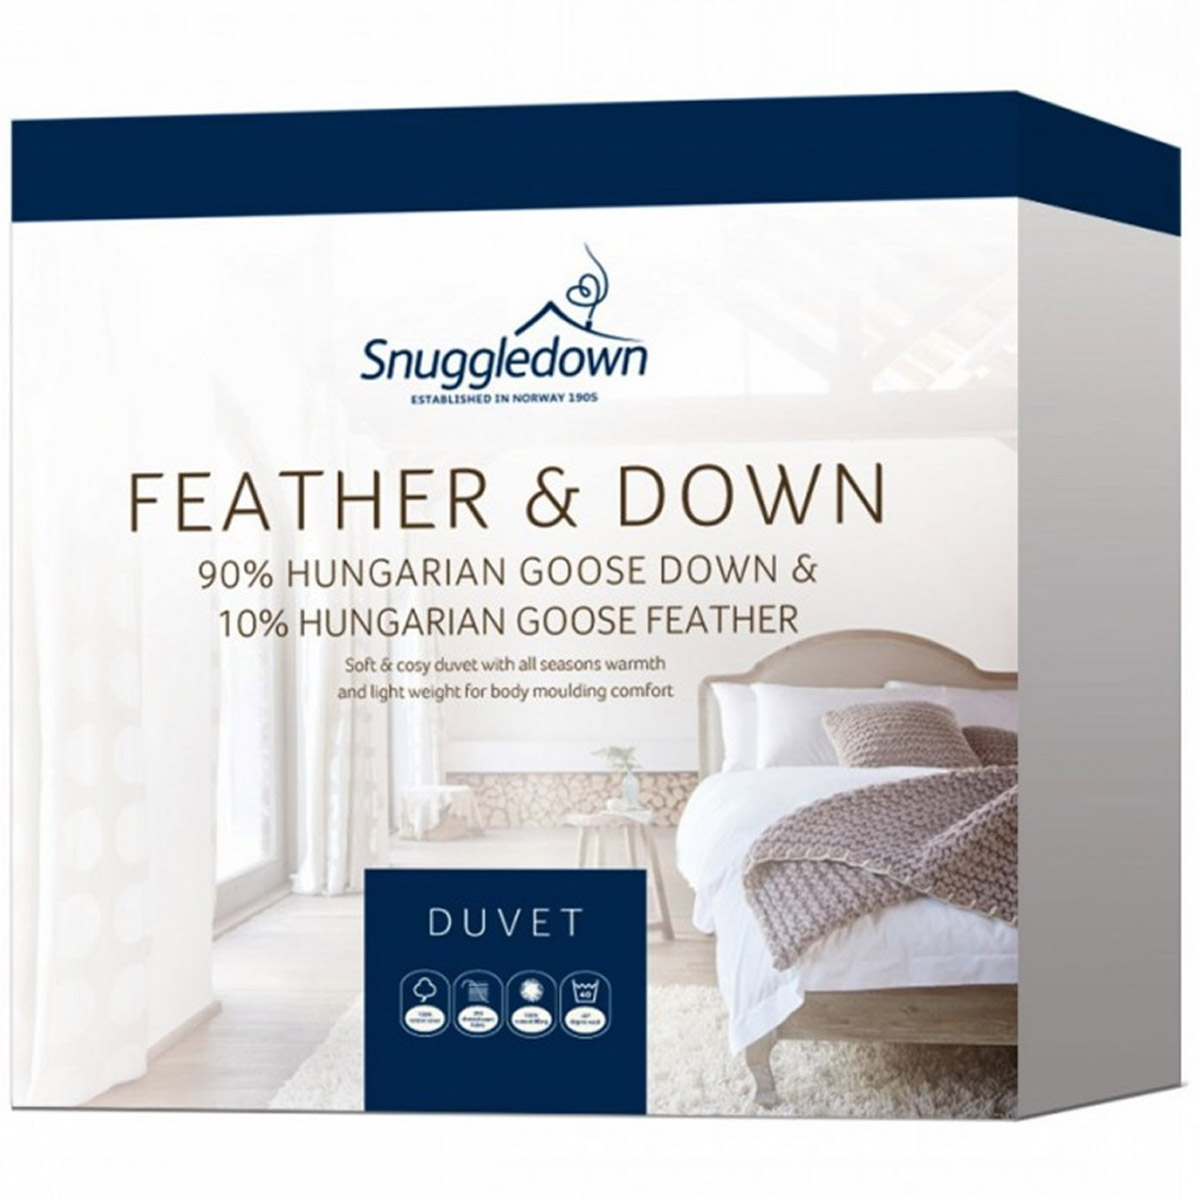 Snuggledown Hungarian White Goose Feather and Down Quilt